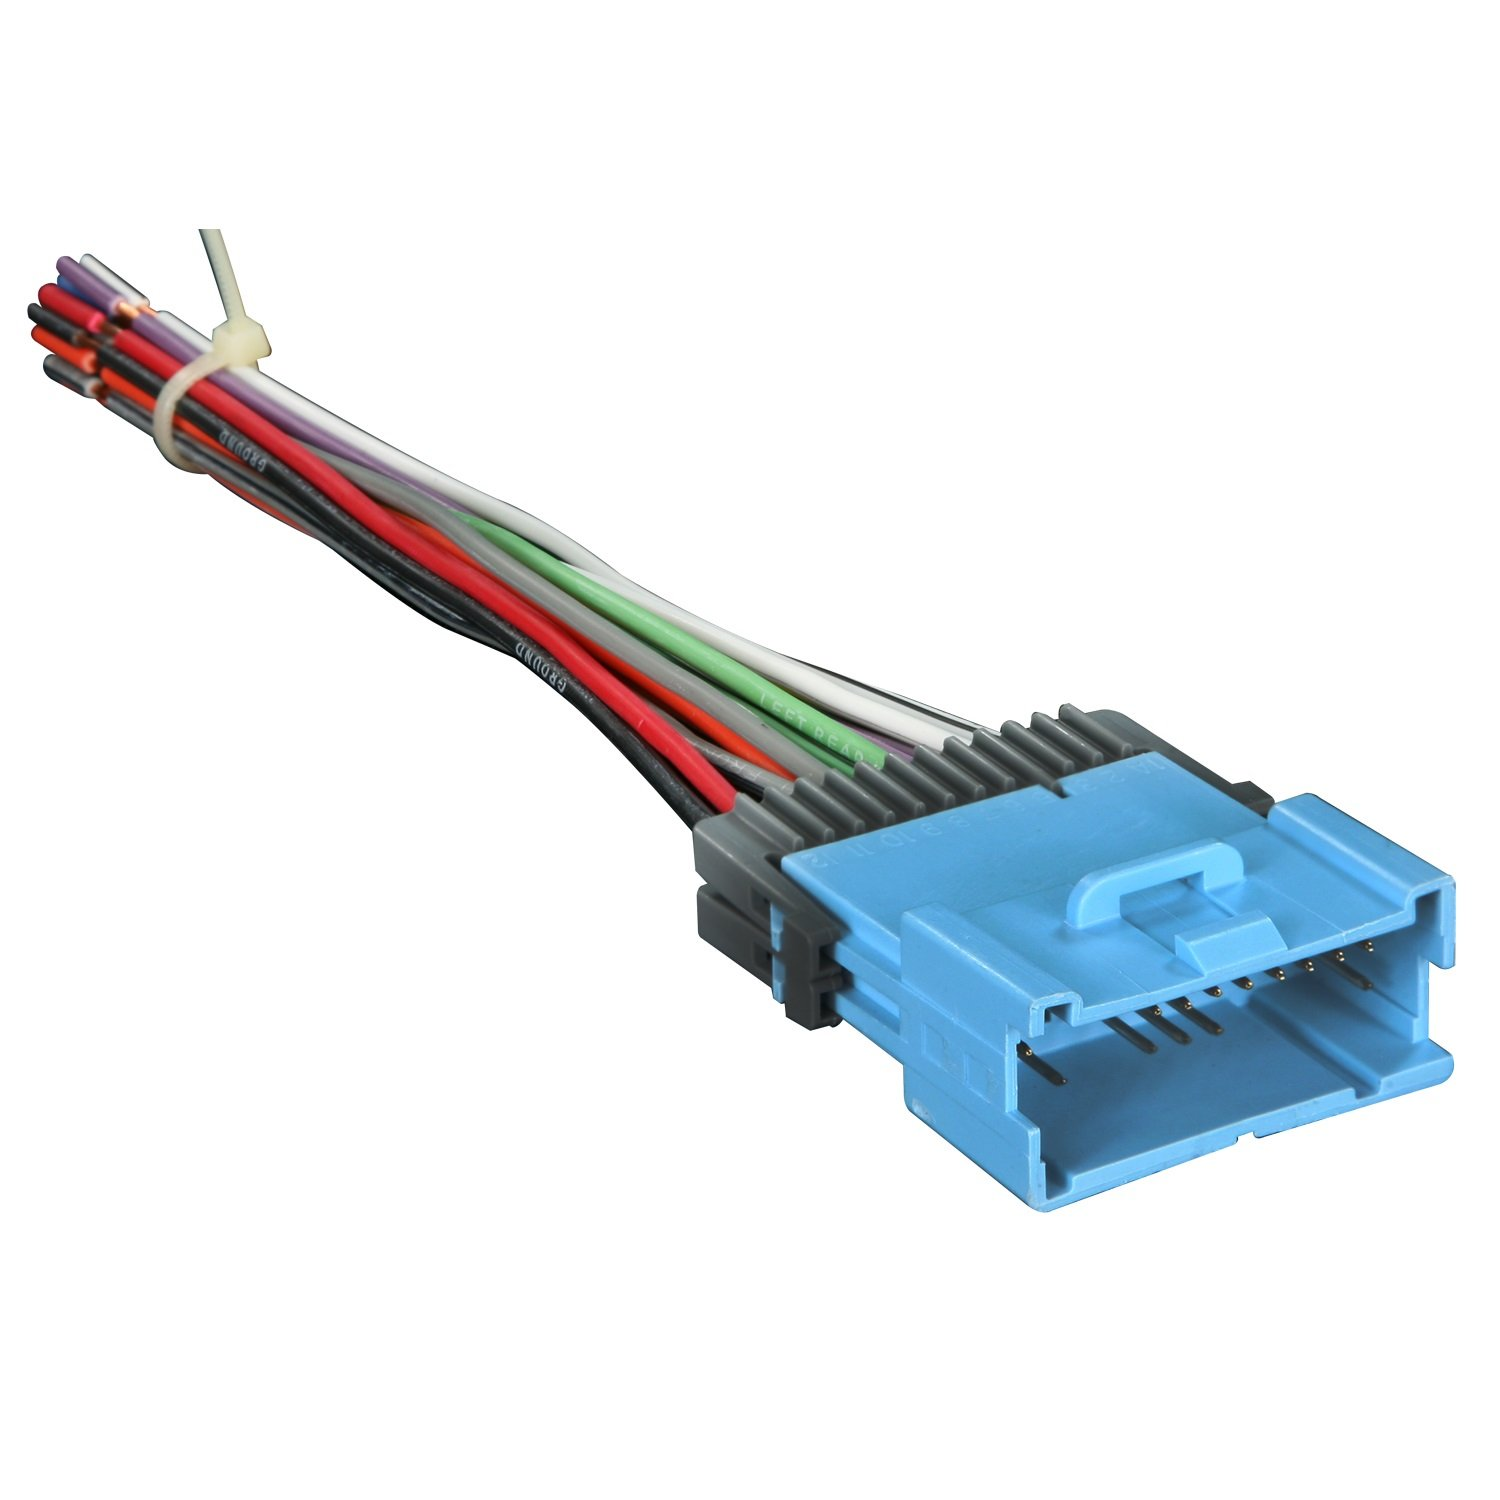 61ruWw 2aJL._SL1500_ amazon com metra 70 2102 radio wiring harness for gm 04 05 car Raspberry Pi 3 Wiring Diagram at reclaimingppi.co